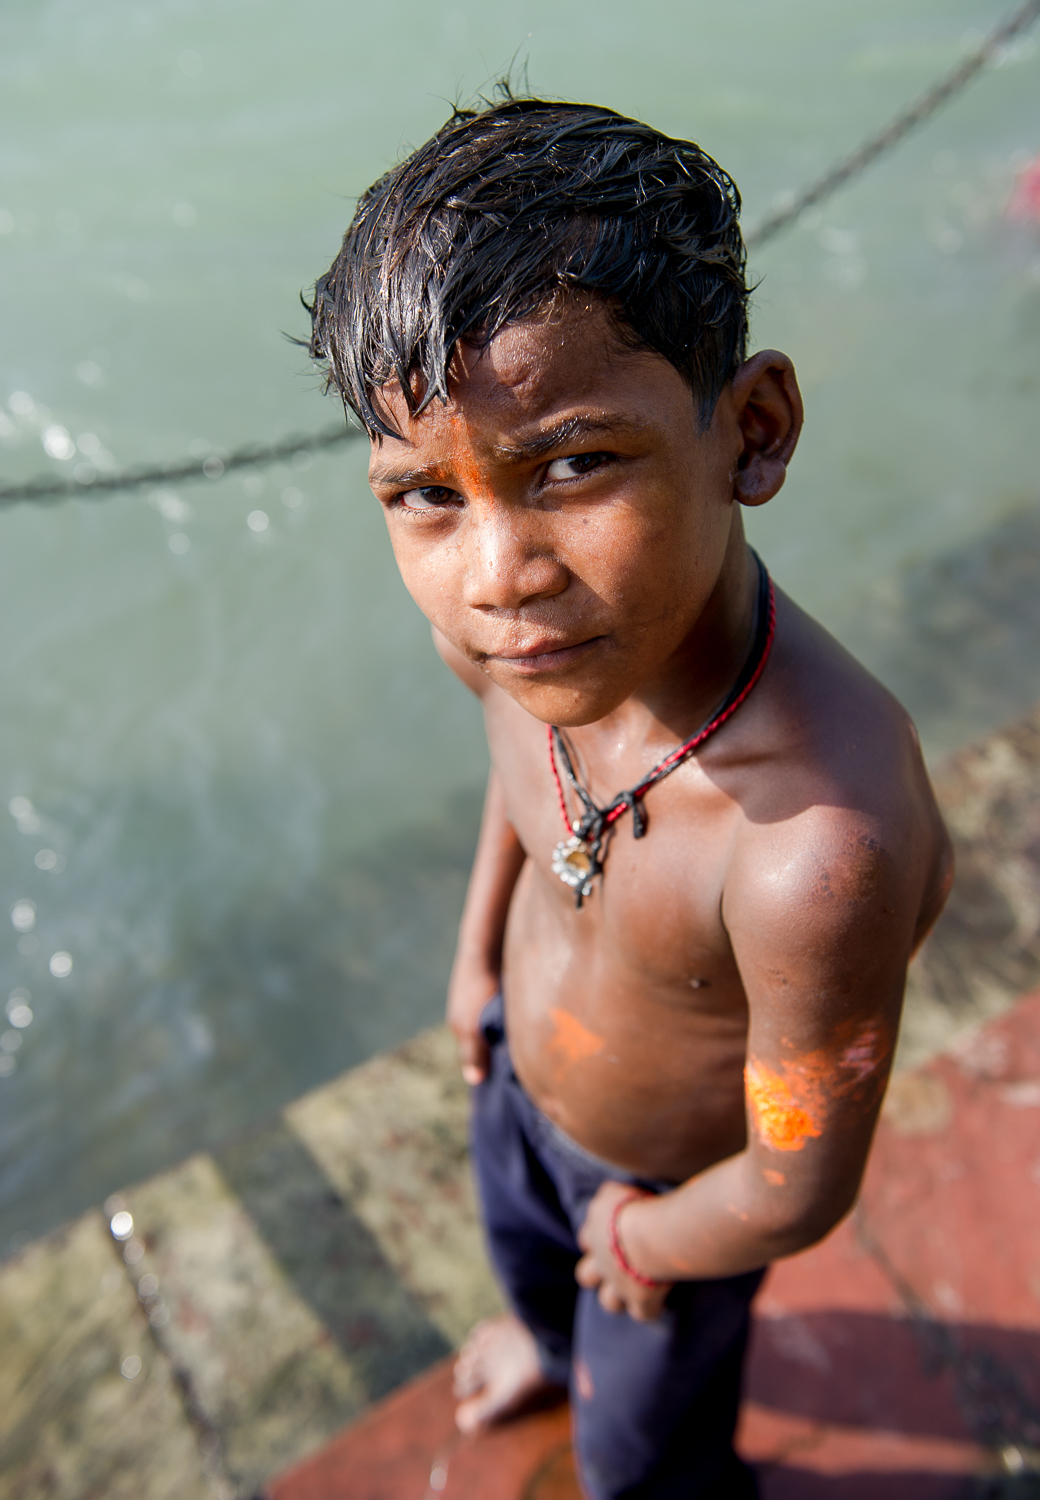 Young boy, Ganges River, Haridwar, 2019